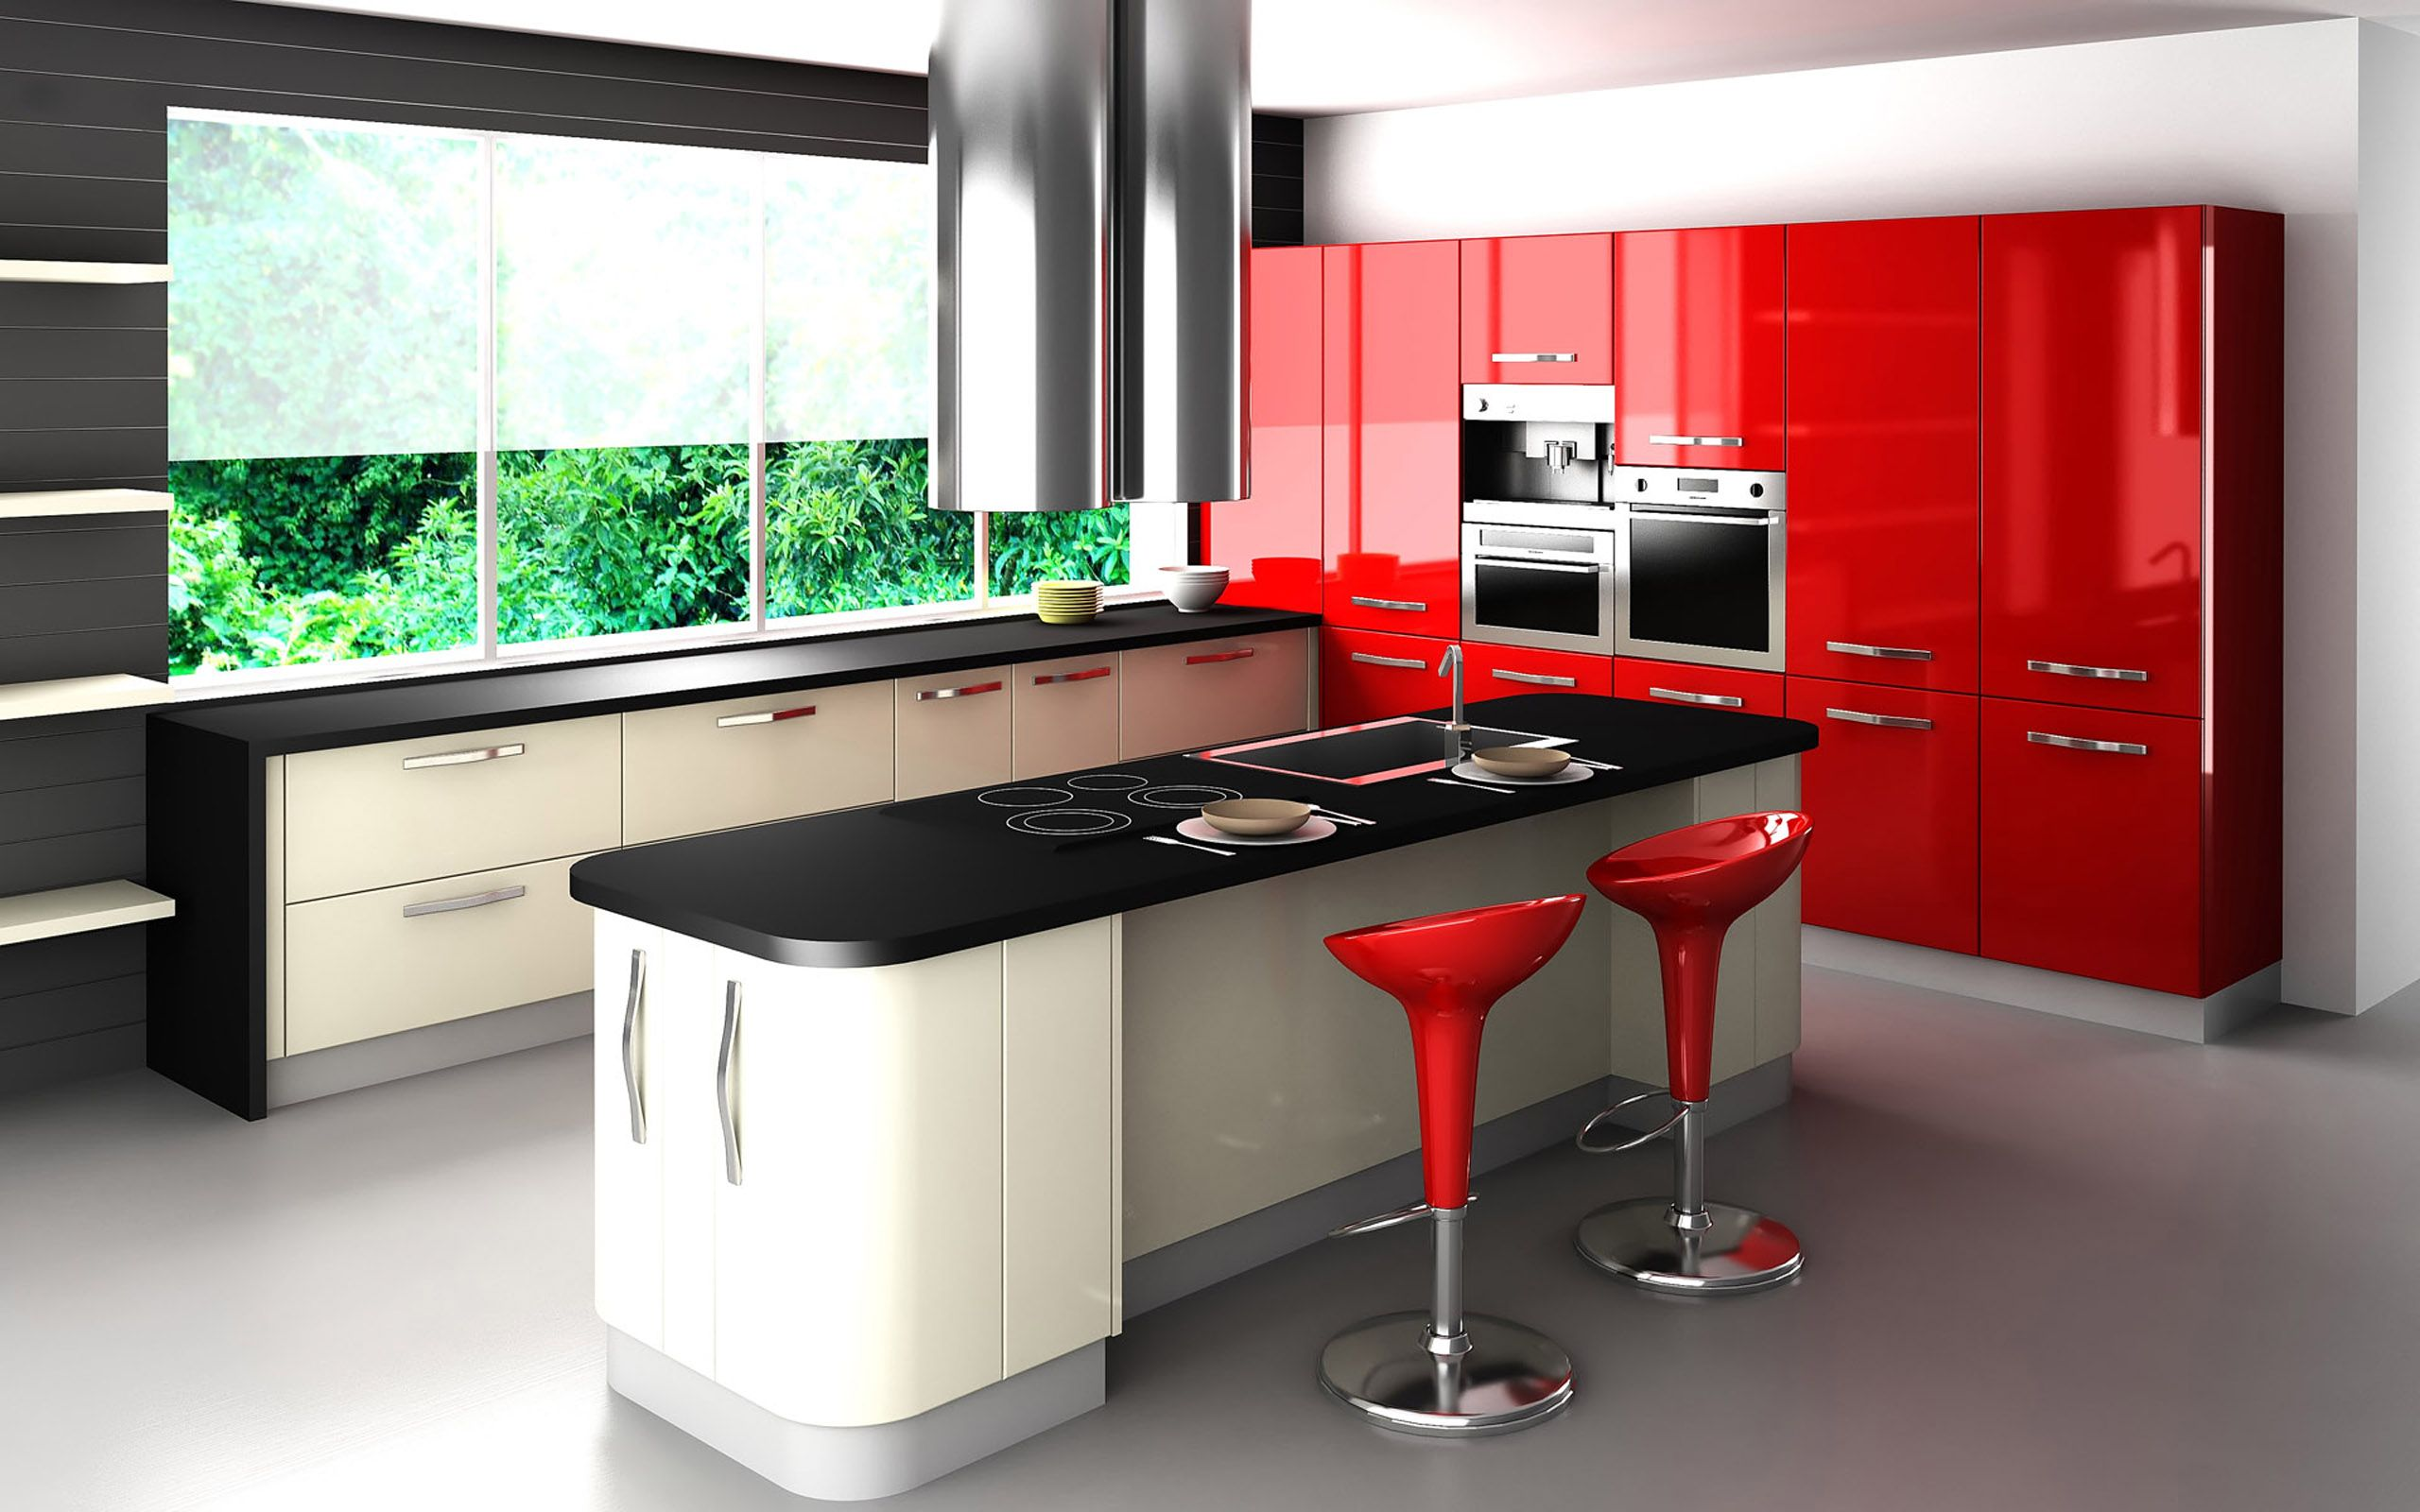 Uncategorized Furniture Kitchen cocinas consejos e modern e